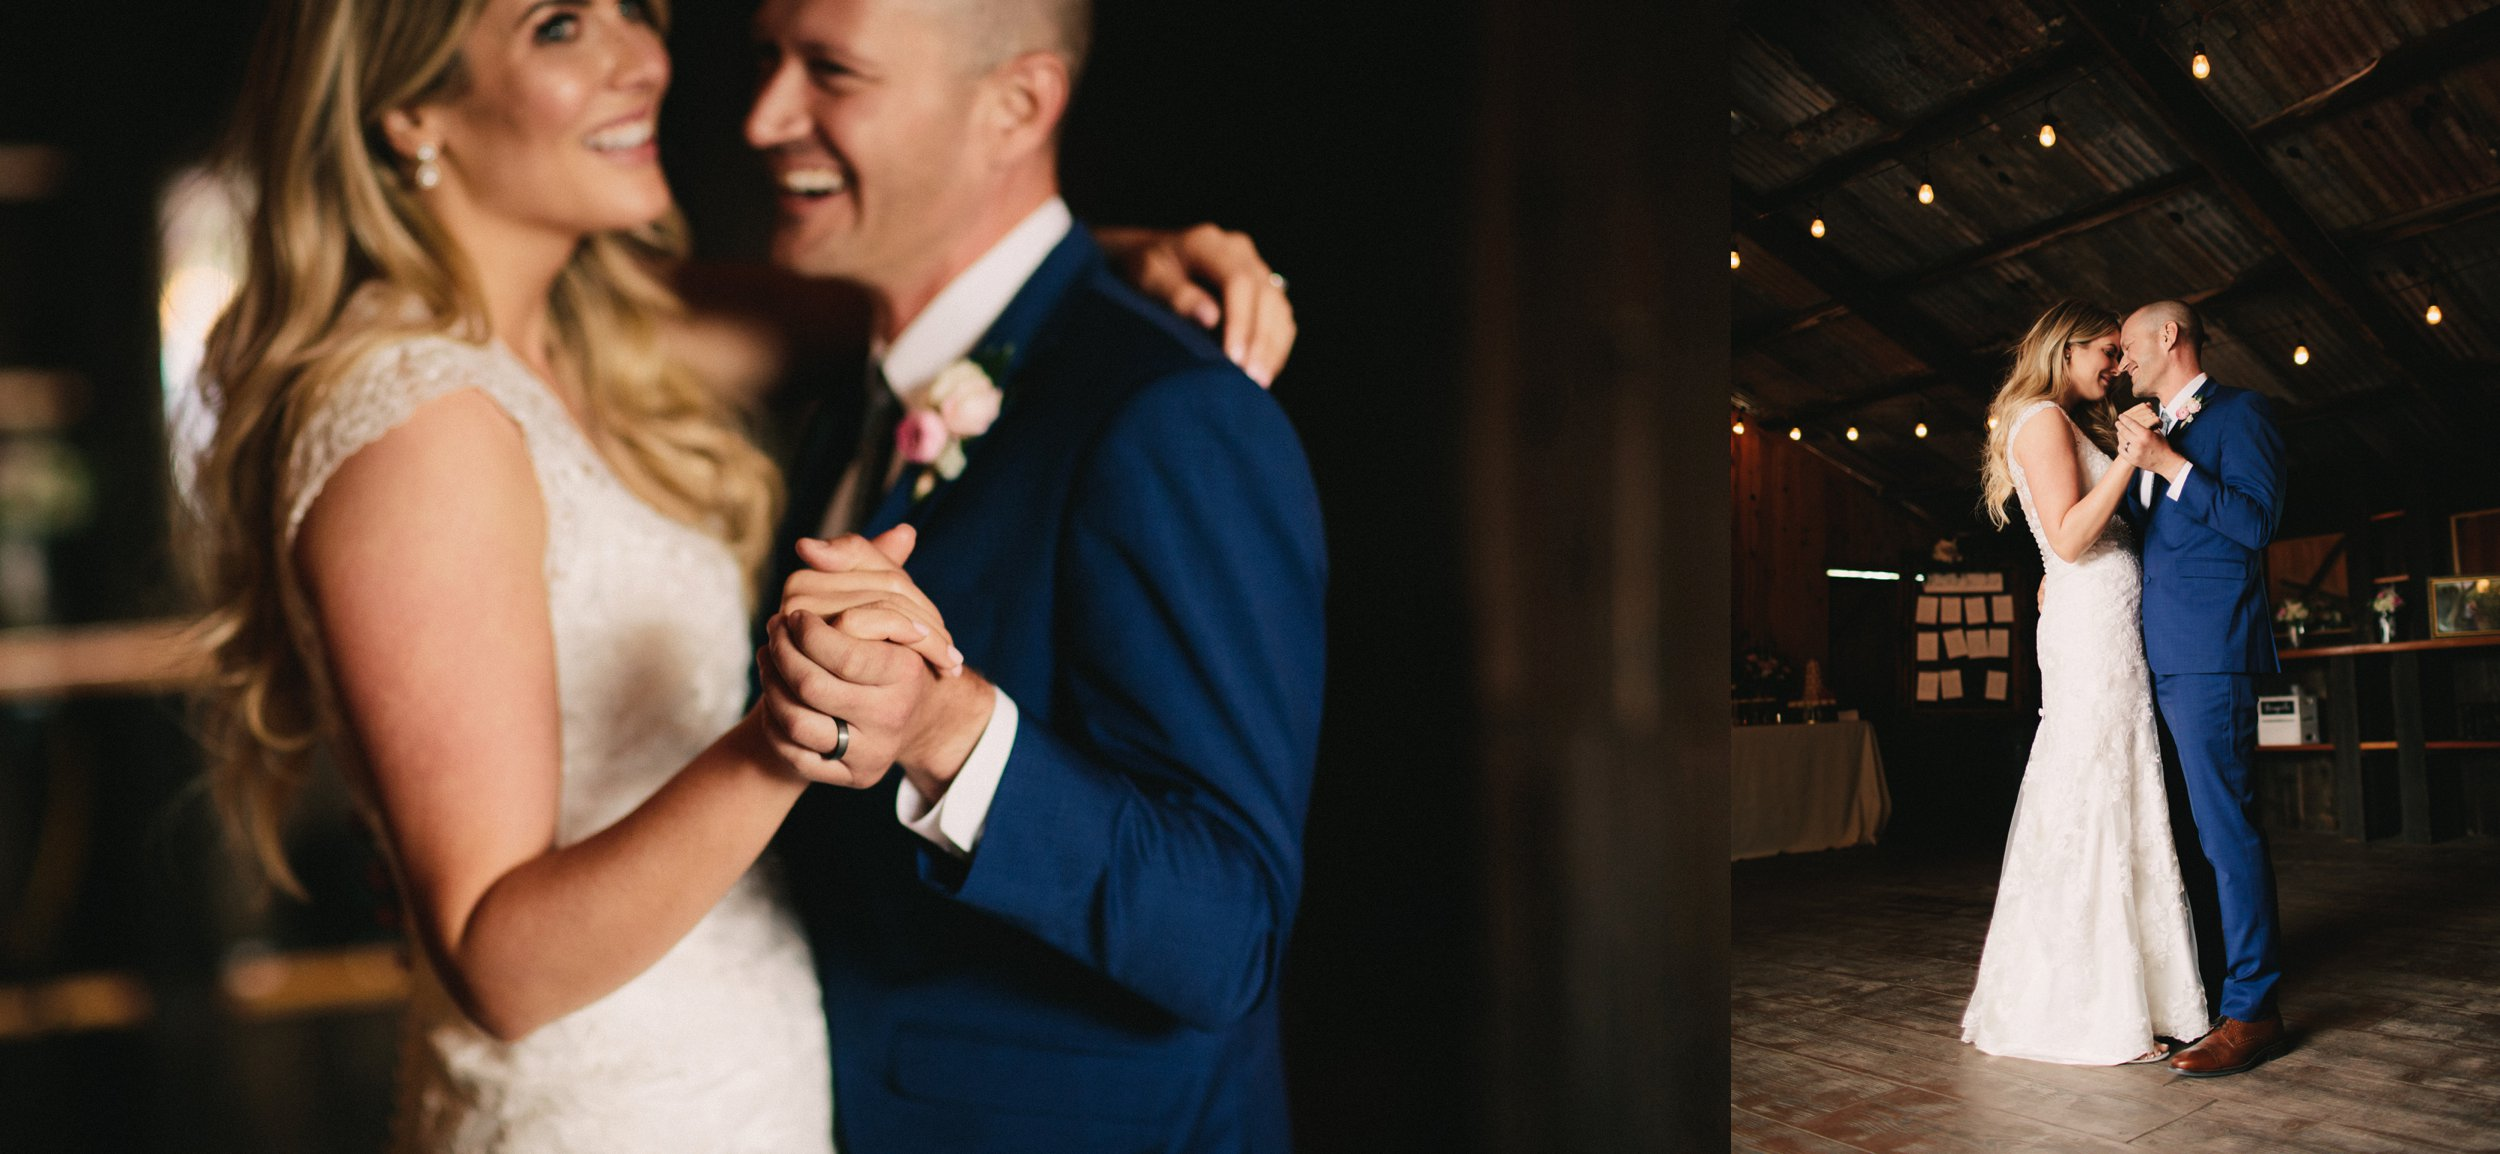 CaliforniaWedding|LindenCloverPhotography_0084.jpg